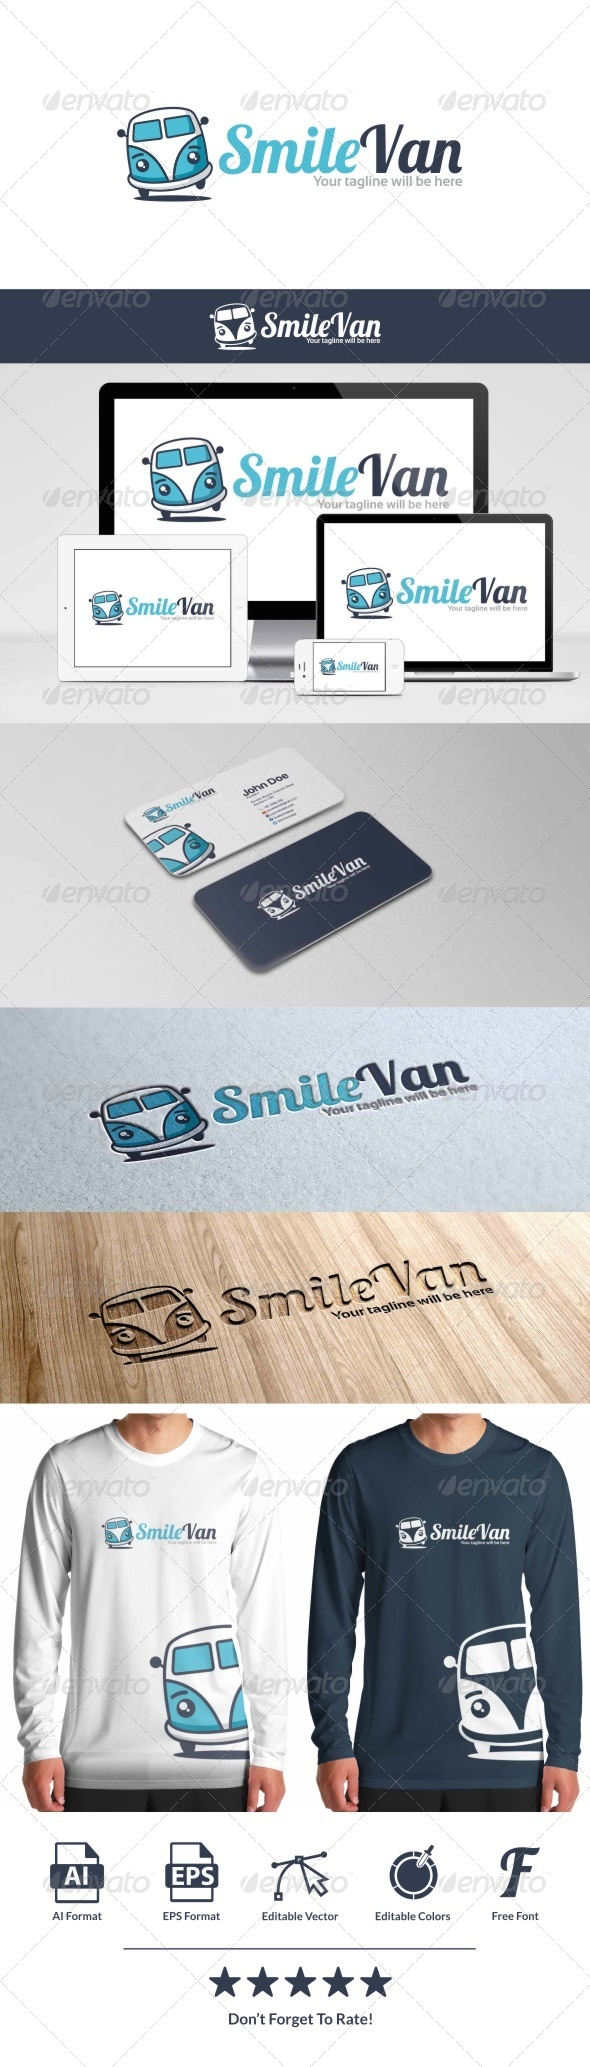 GraphicRiver Smile Van Logo 8646458